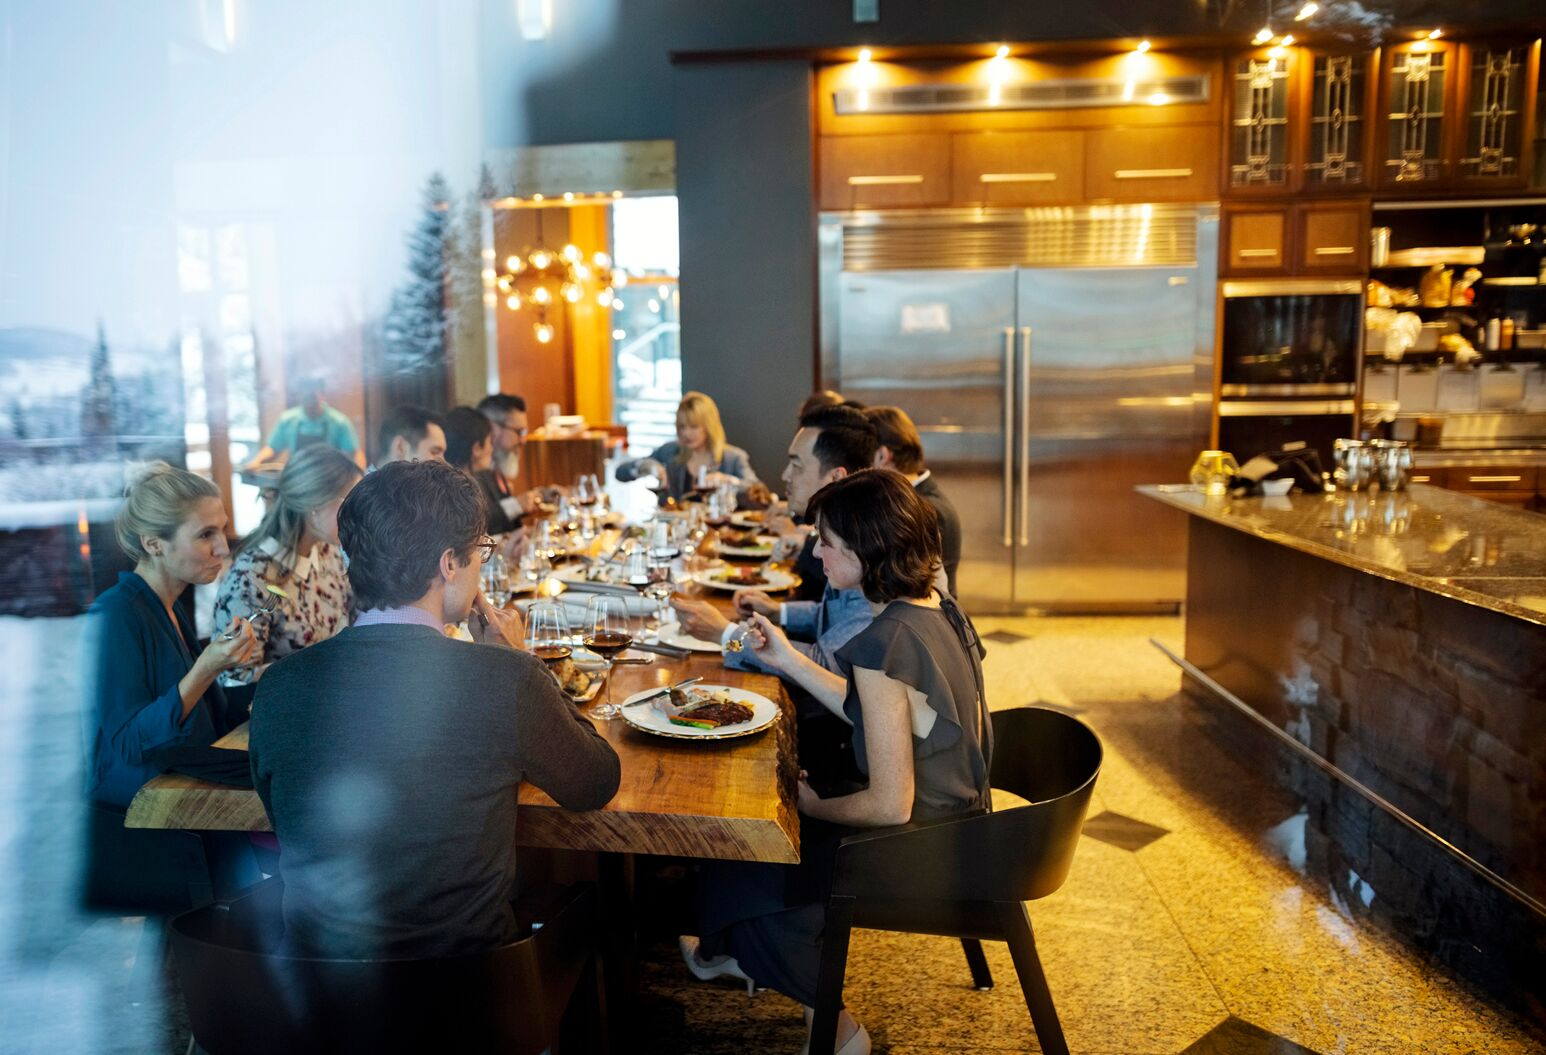 People dine in a restaurant